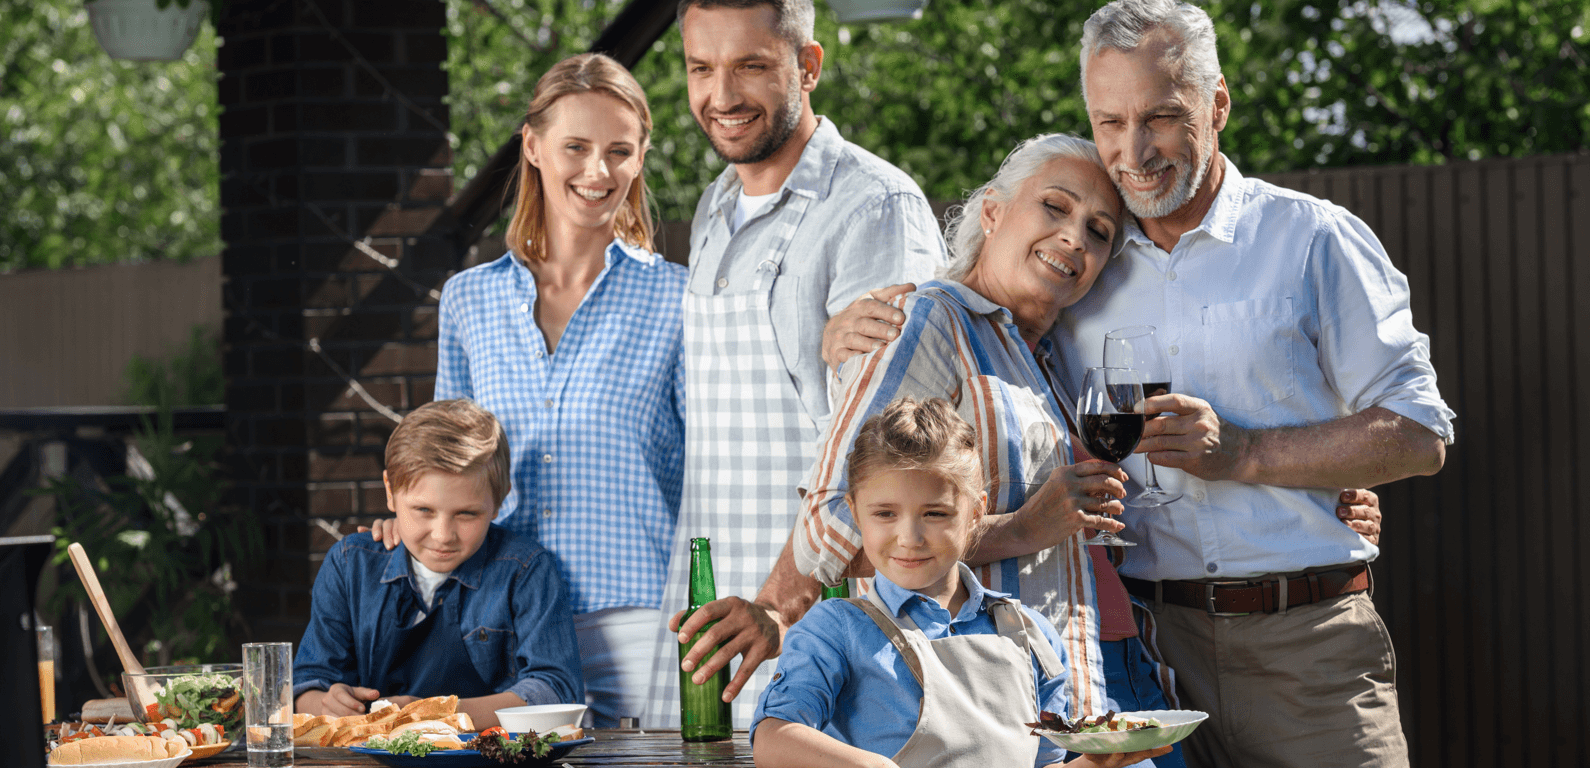 Home Model Options for Multigenerational Families Featured Image